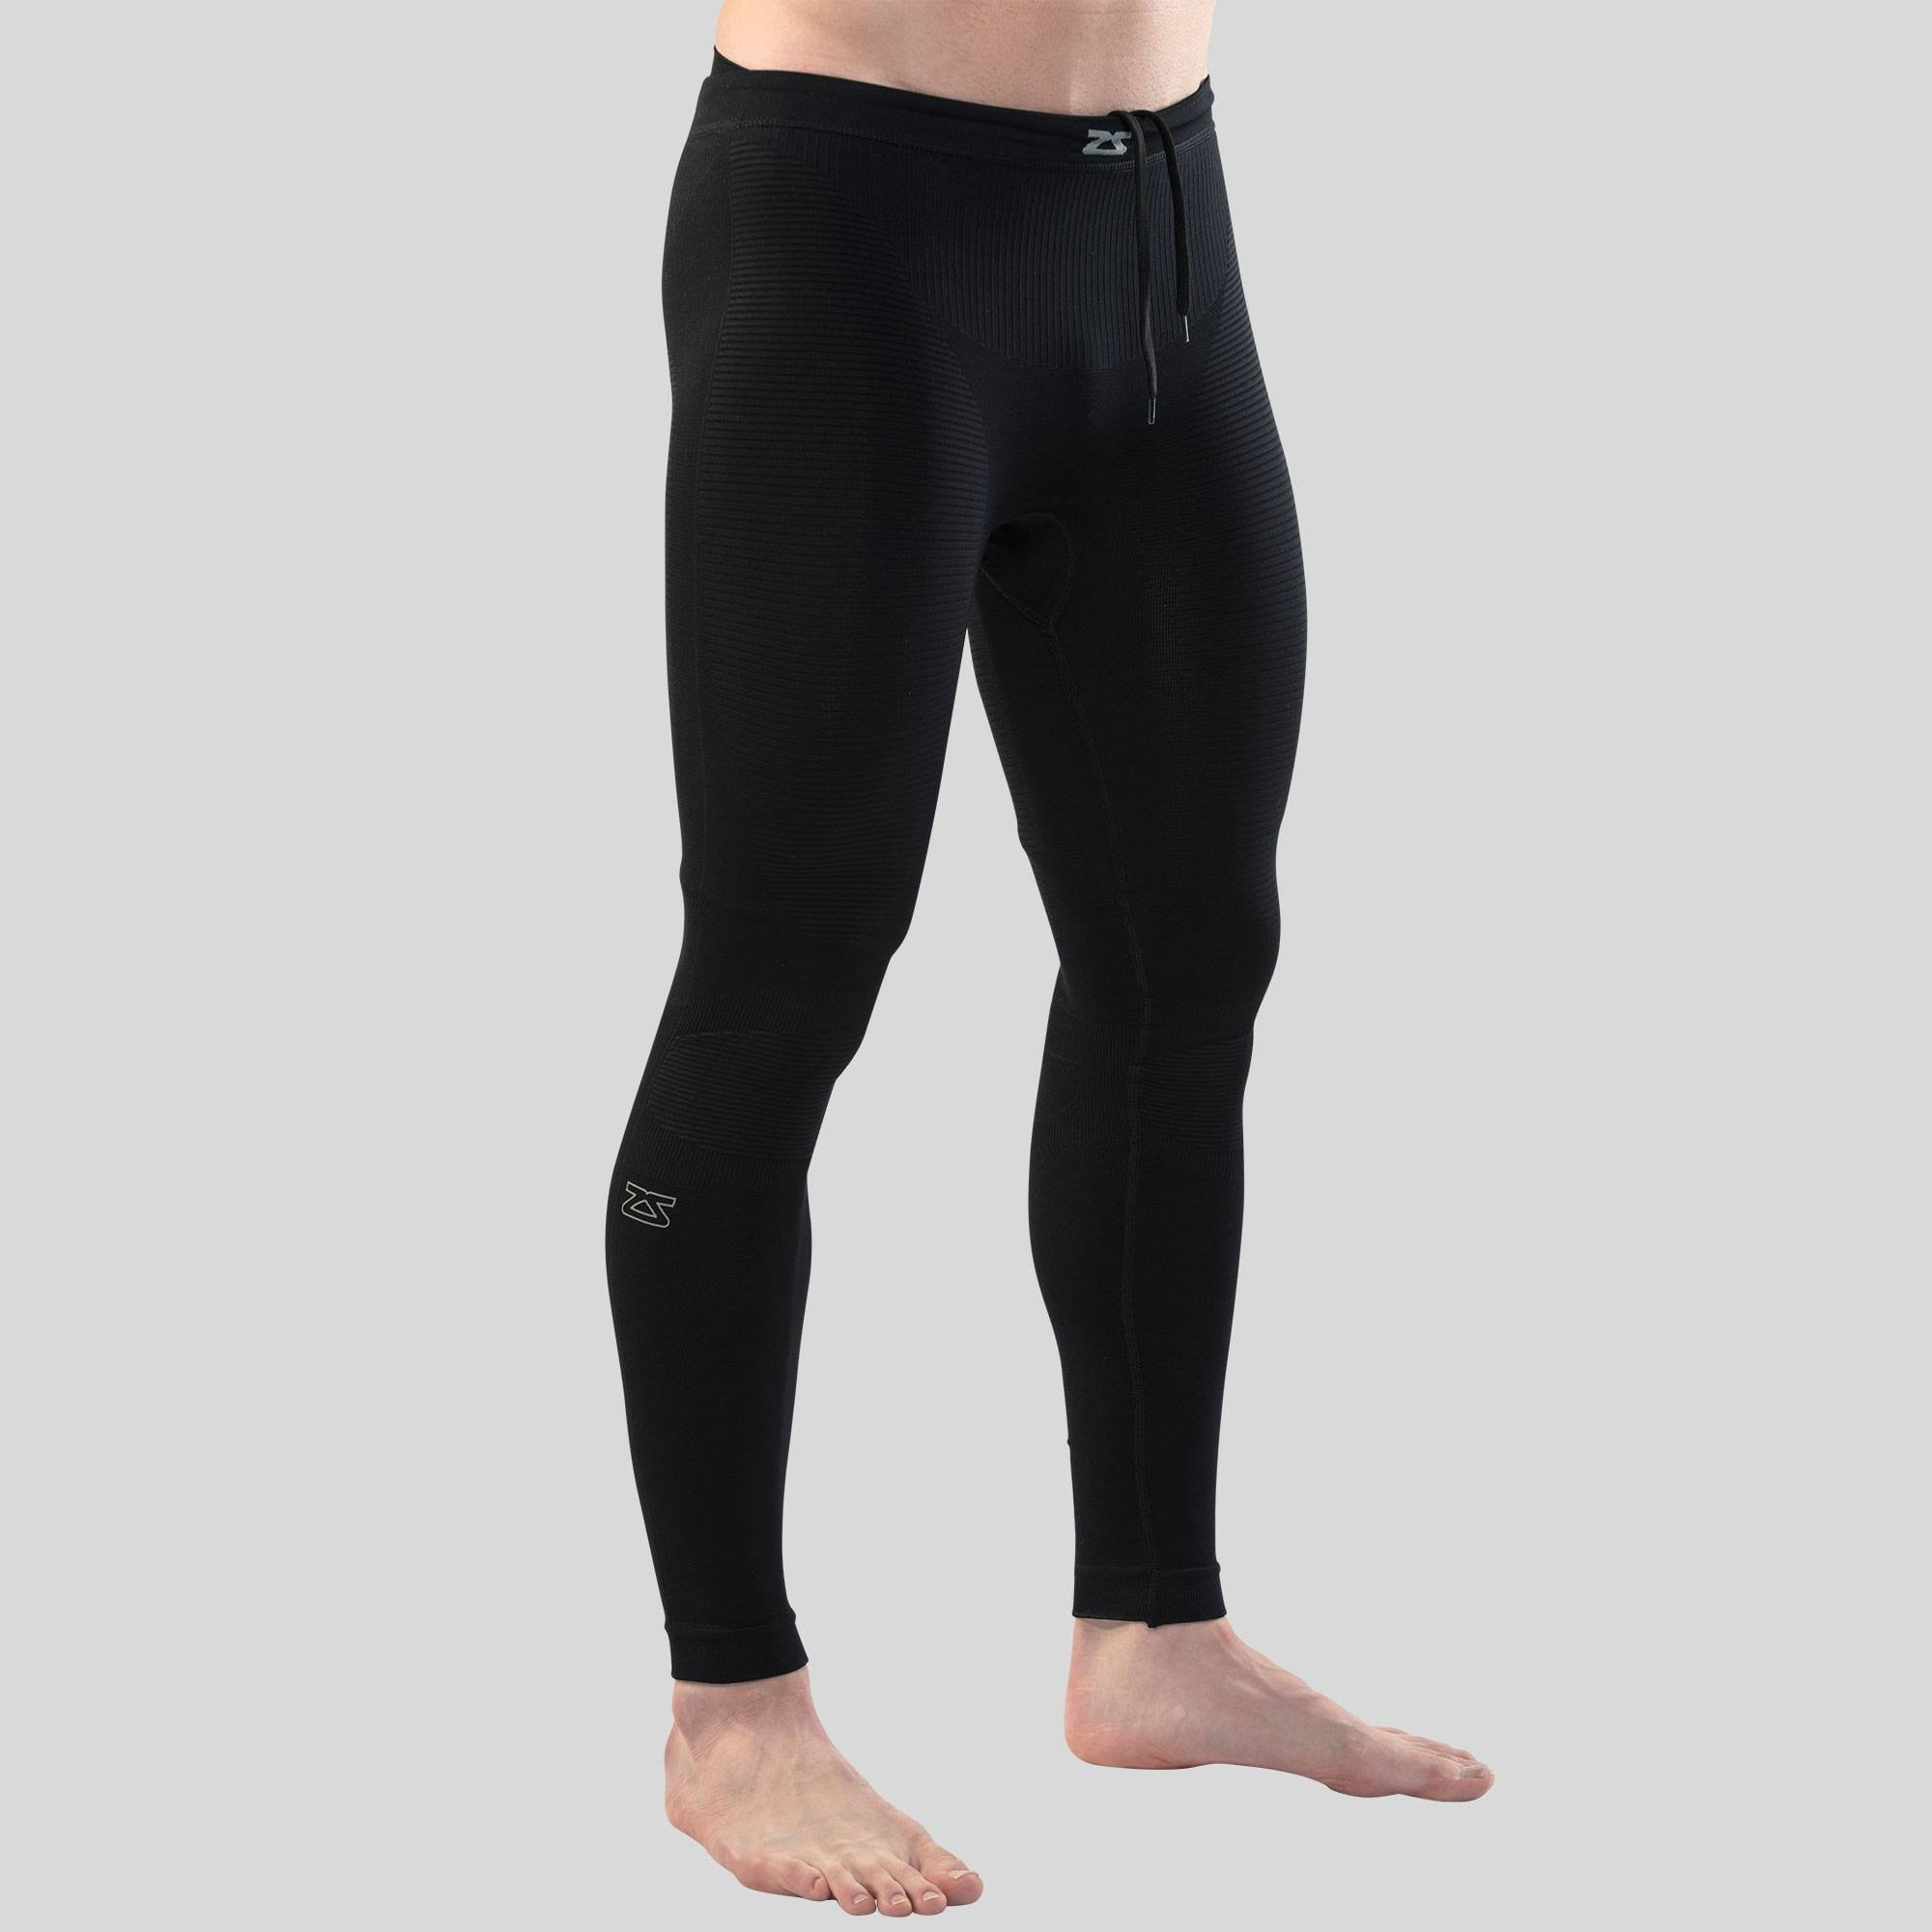 a560e949cf83 Recovery Tights, Running Compression Tights for Men | Zensah